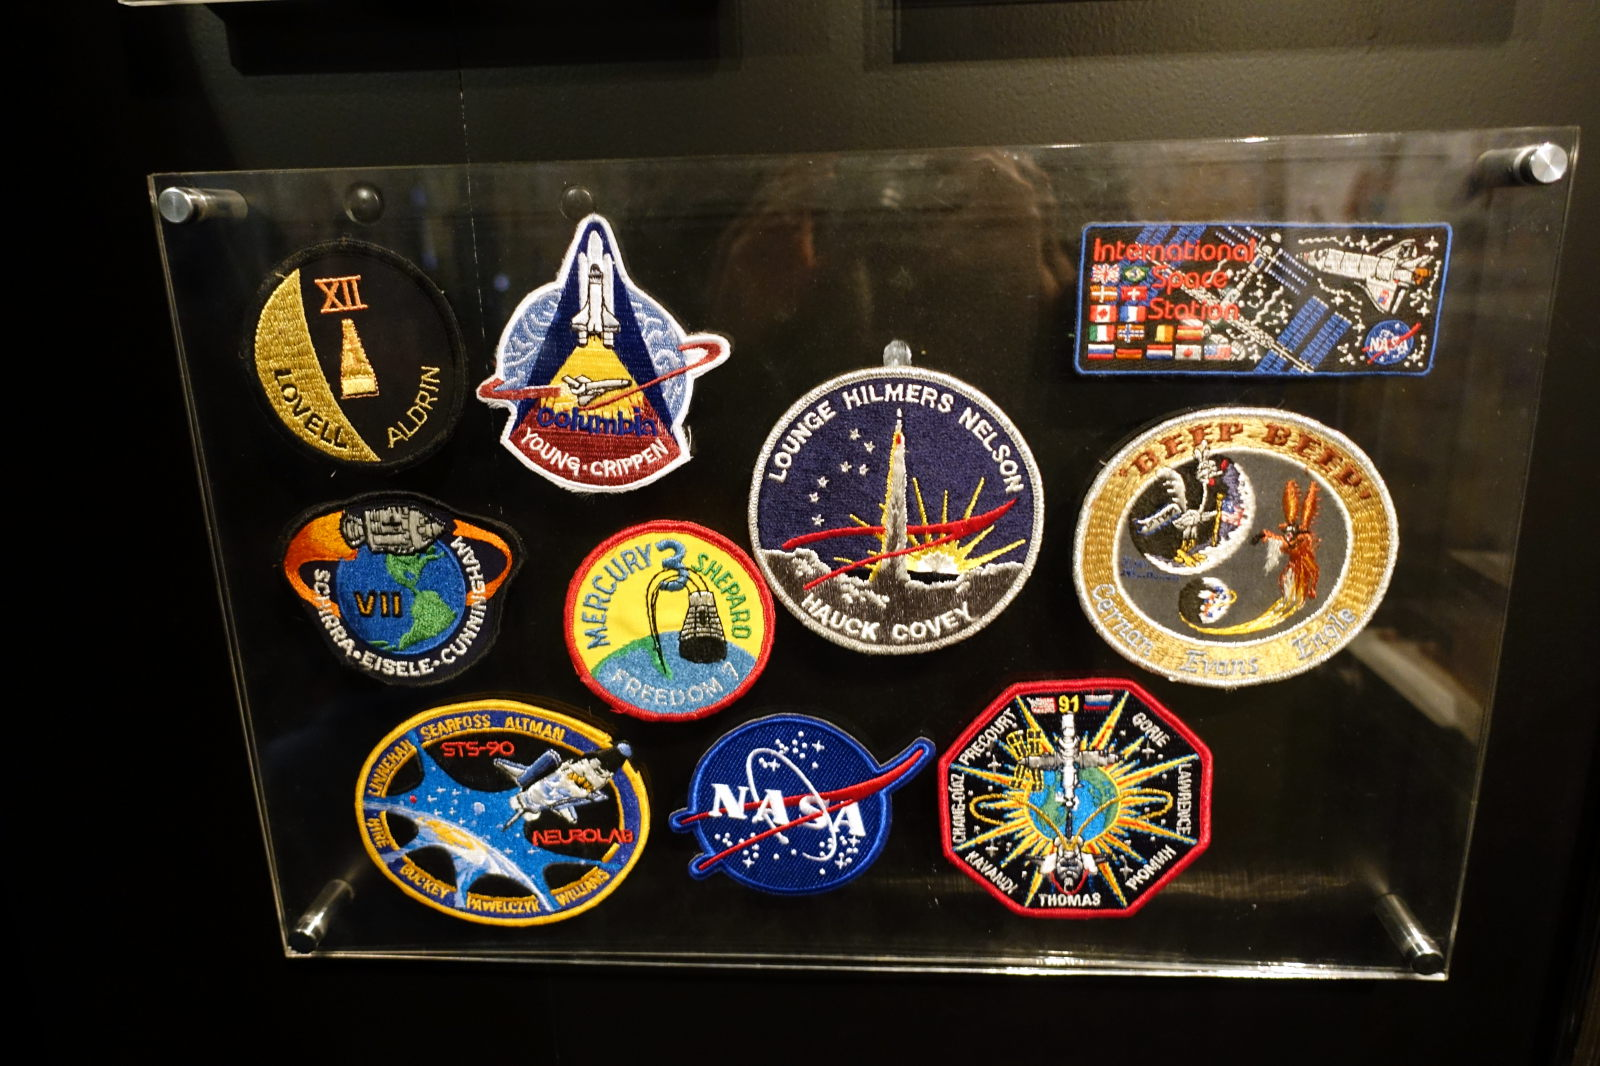 CDSCC Space programs' patches